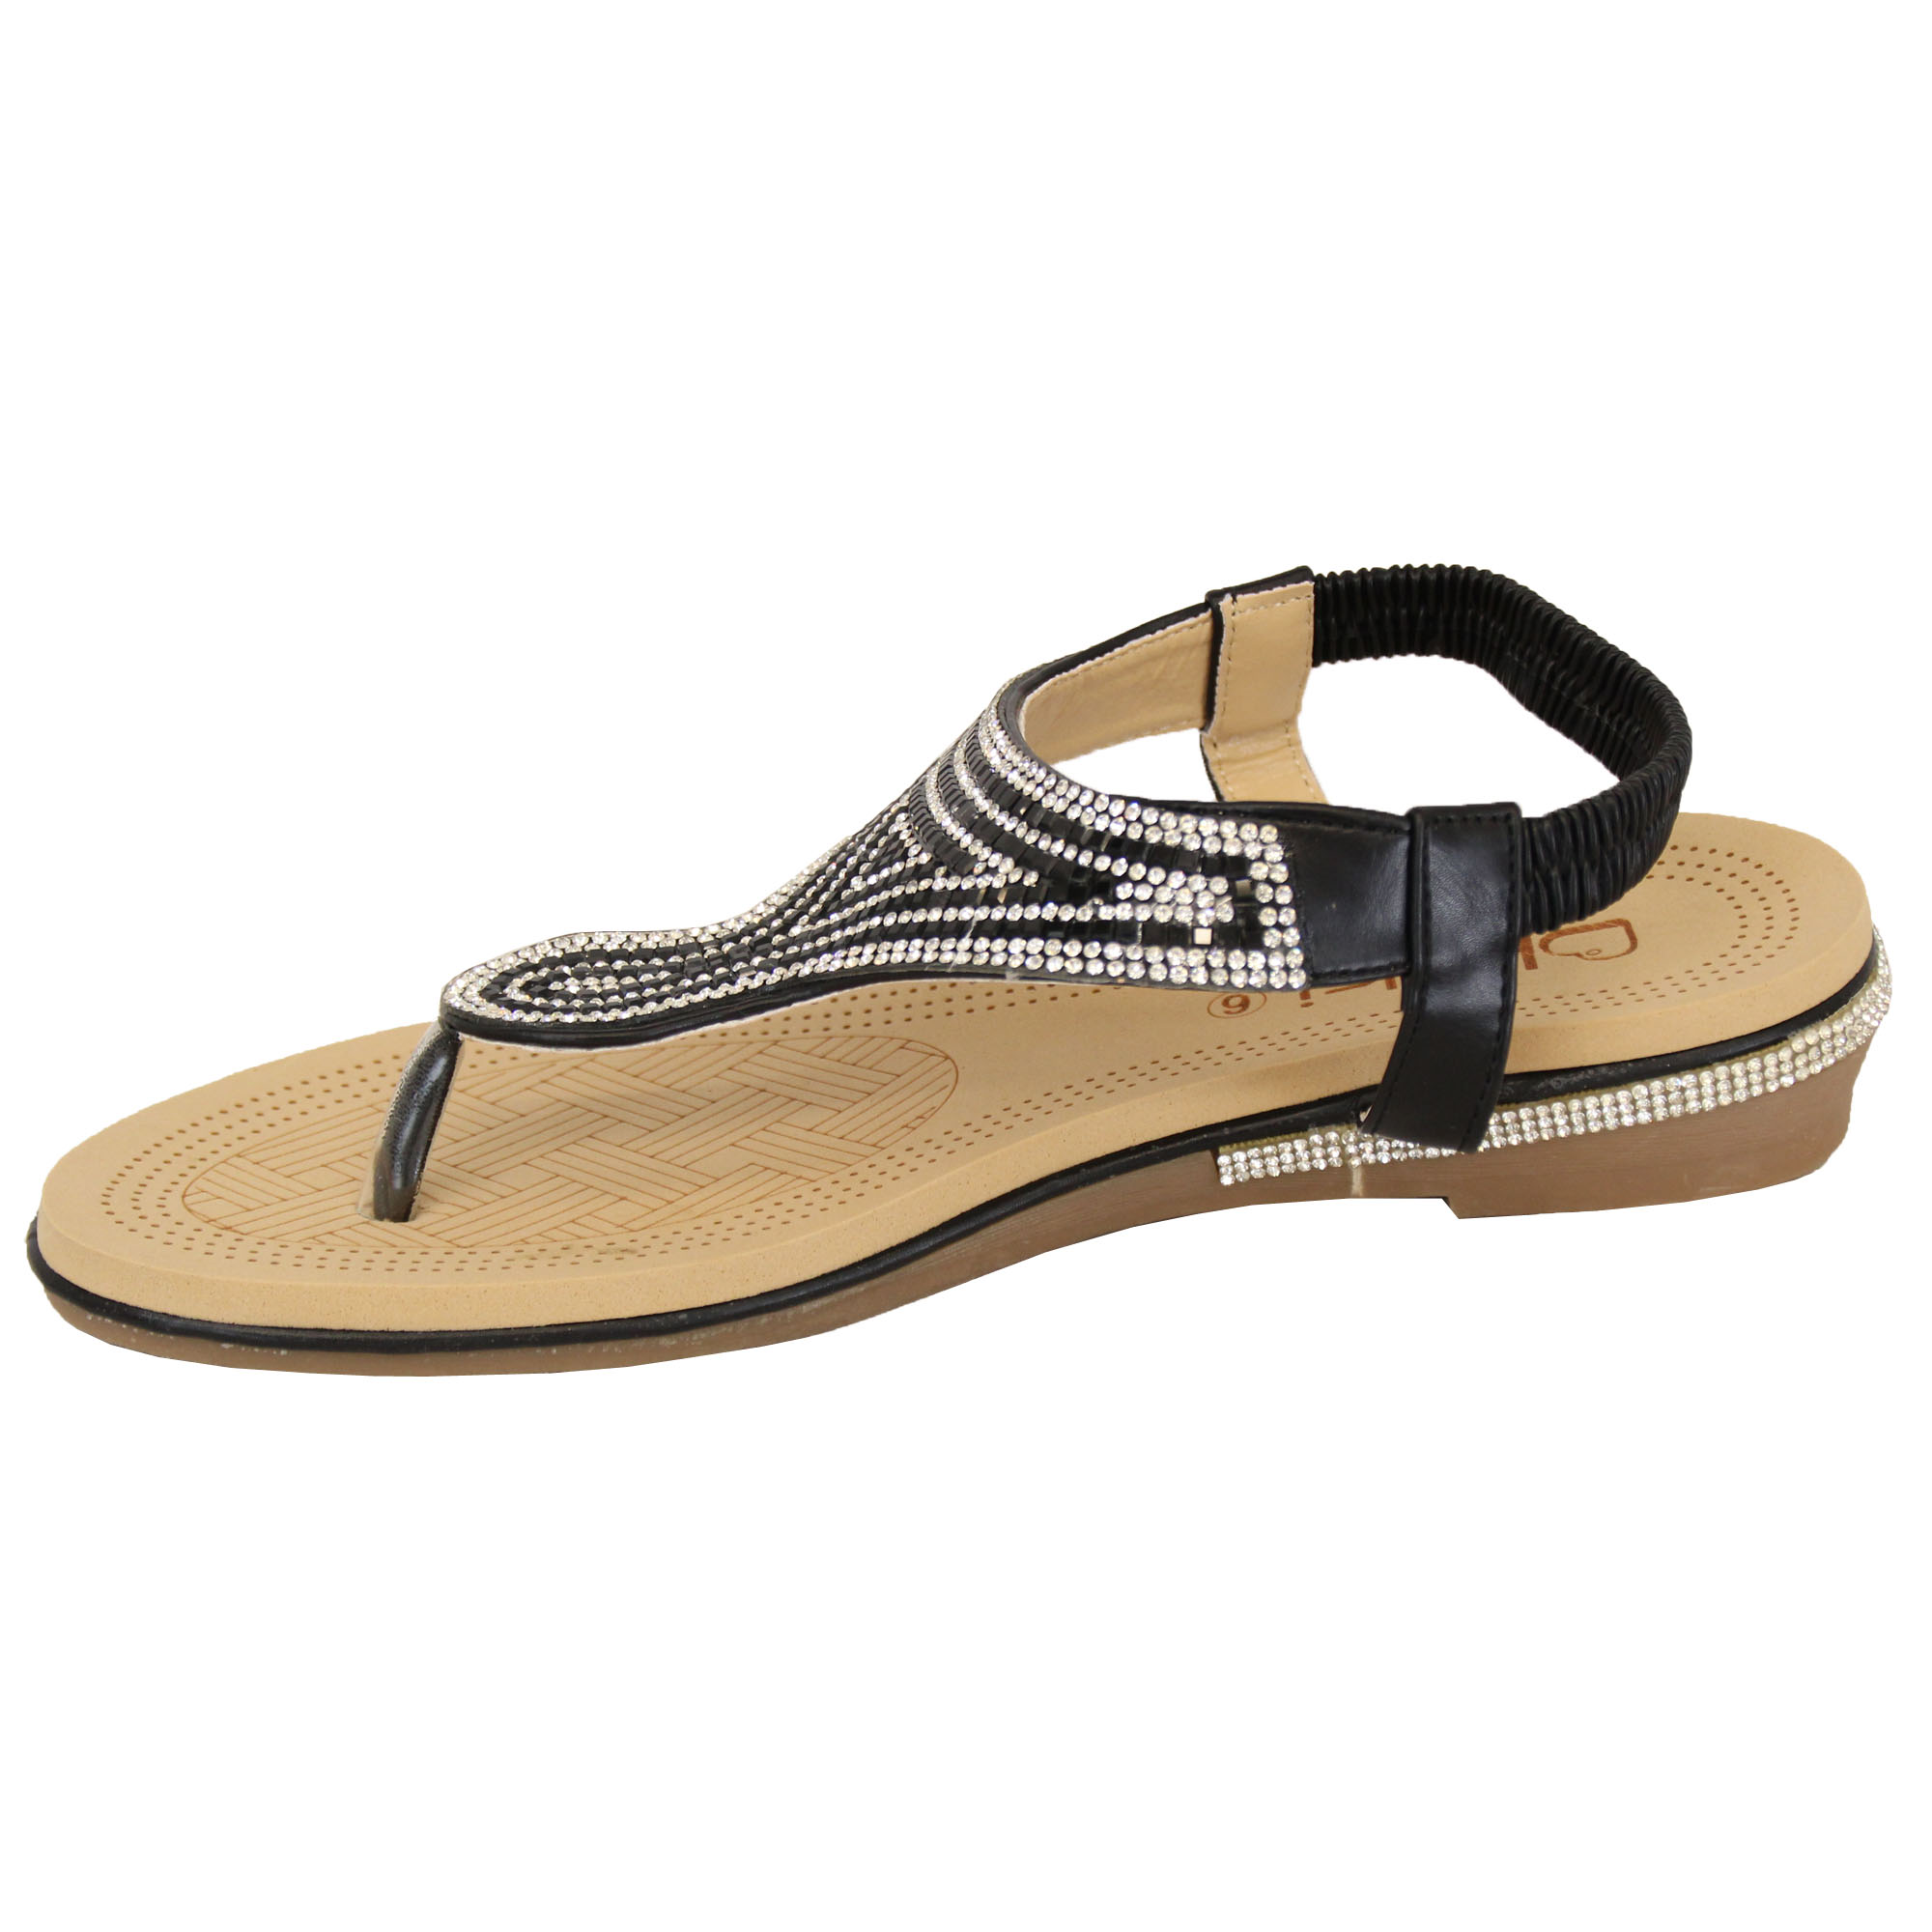 Ladies-Sandals-Kelsi-Womens-Diamante-Slip-On-Toe-Post-Shoes-Casual-Fashion-New thumbnail 15